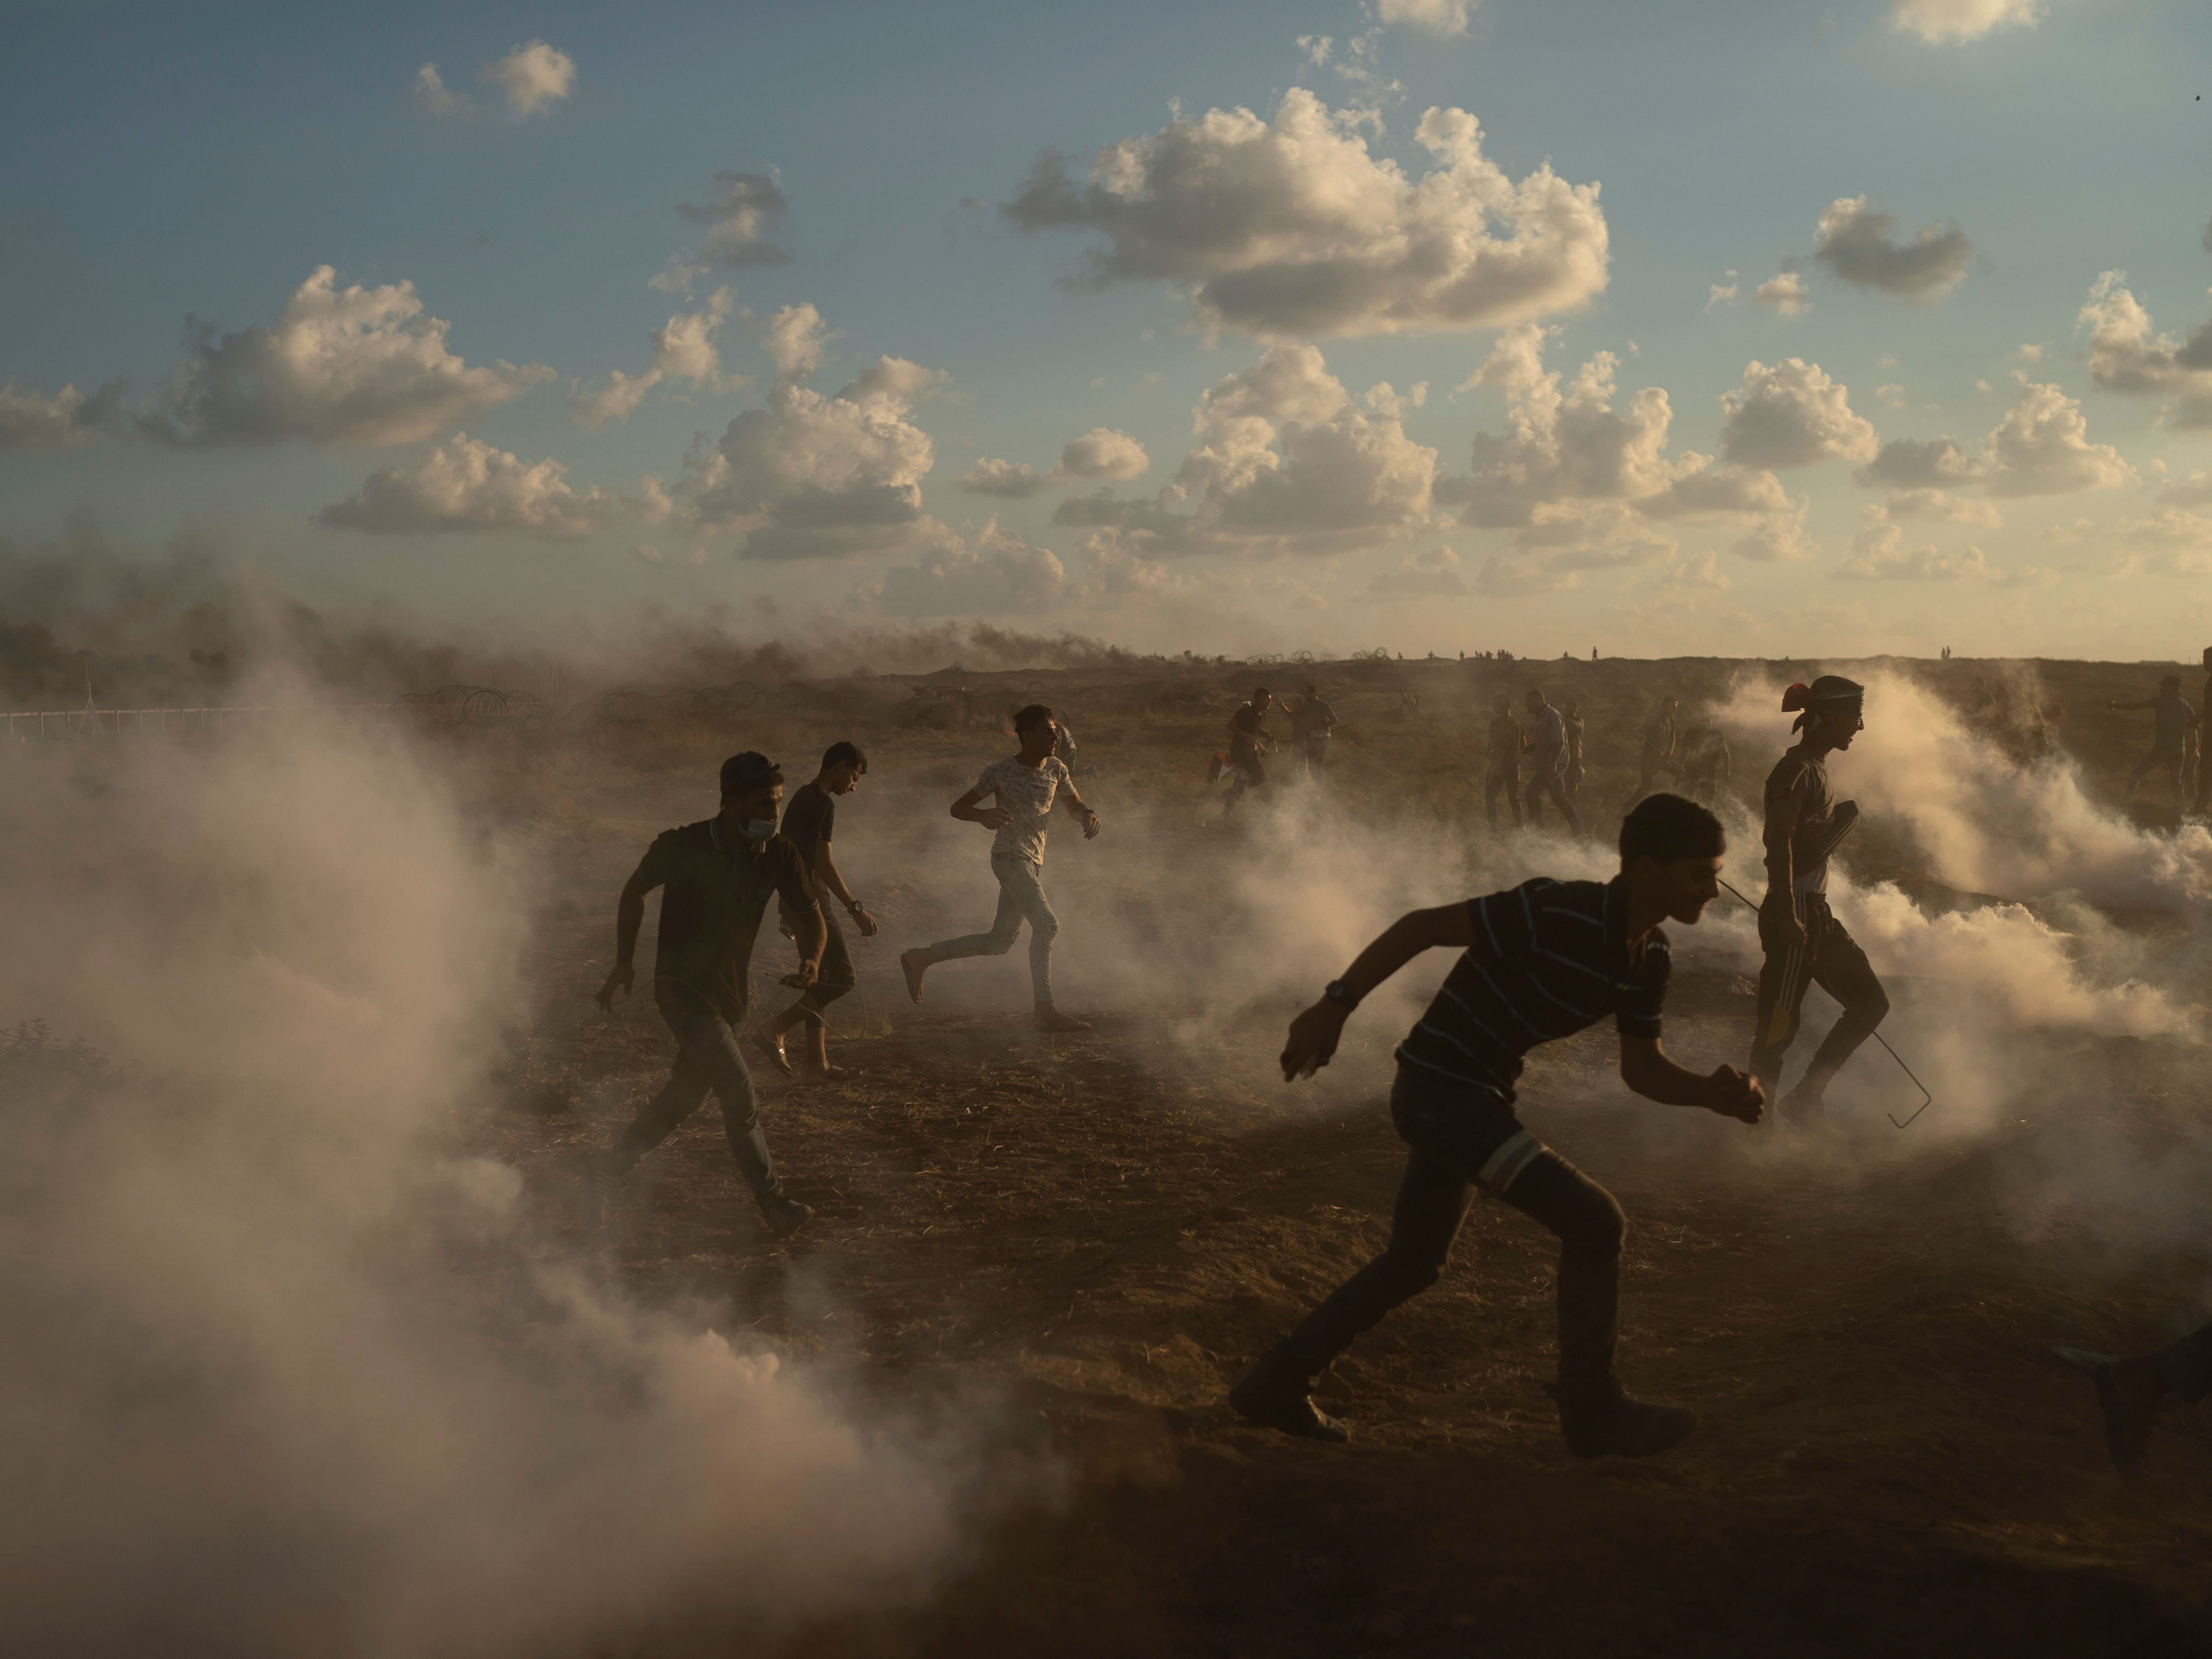 Palestinian protesters run from tear gas fired by Israeli troops during a protest at Gaza Strip's border with Israel, east of Gaza City, Friday, Sept. 7, 2018. A teenager was killed and dozens of other Palestinians injured by Israeli fire at a border protest, Gaza officials said.